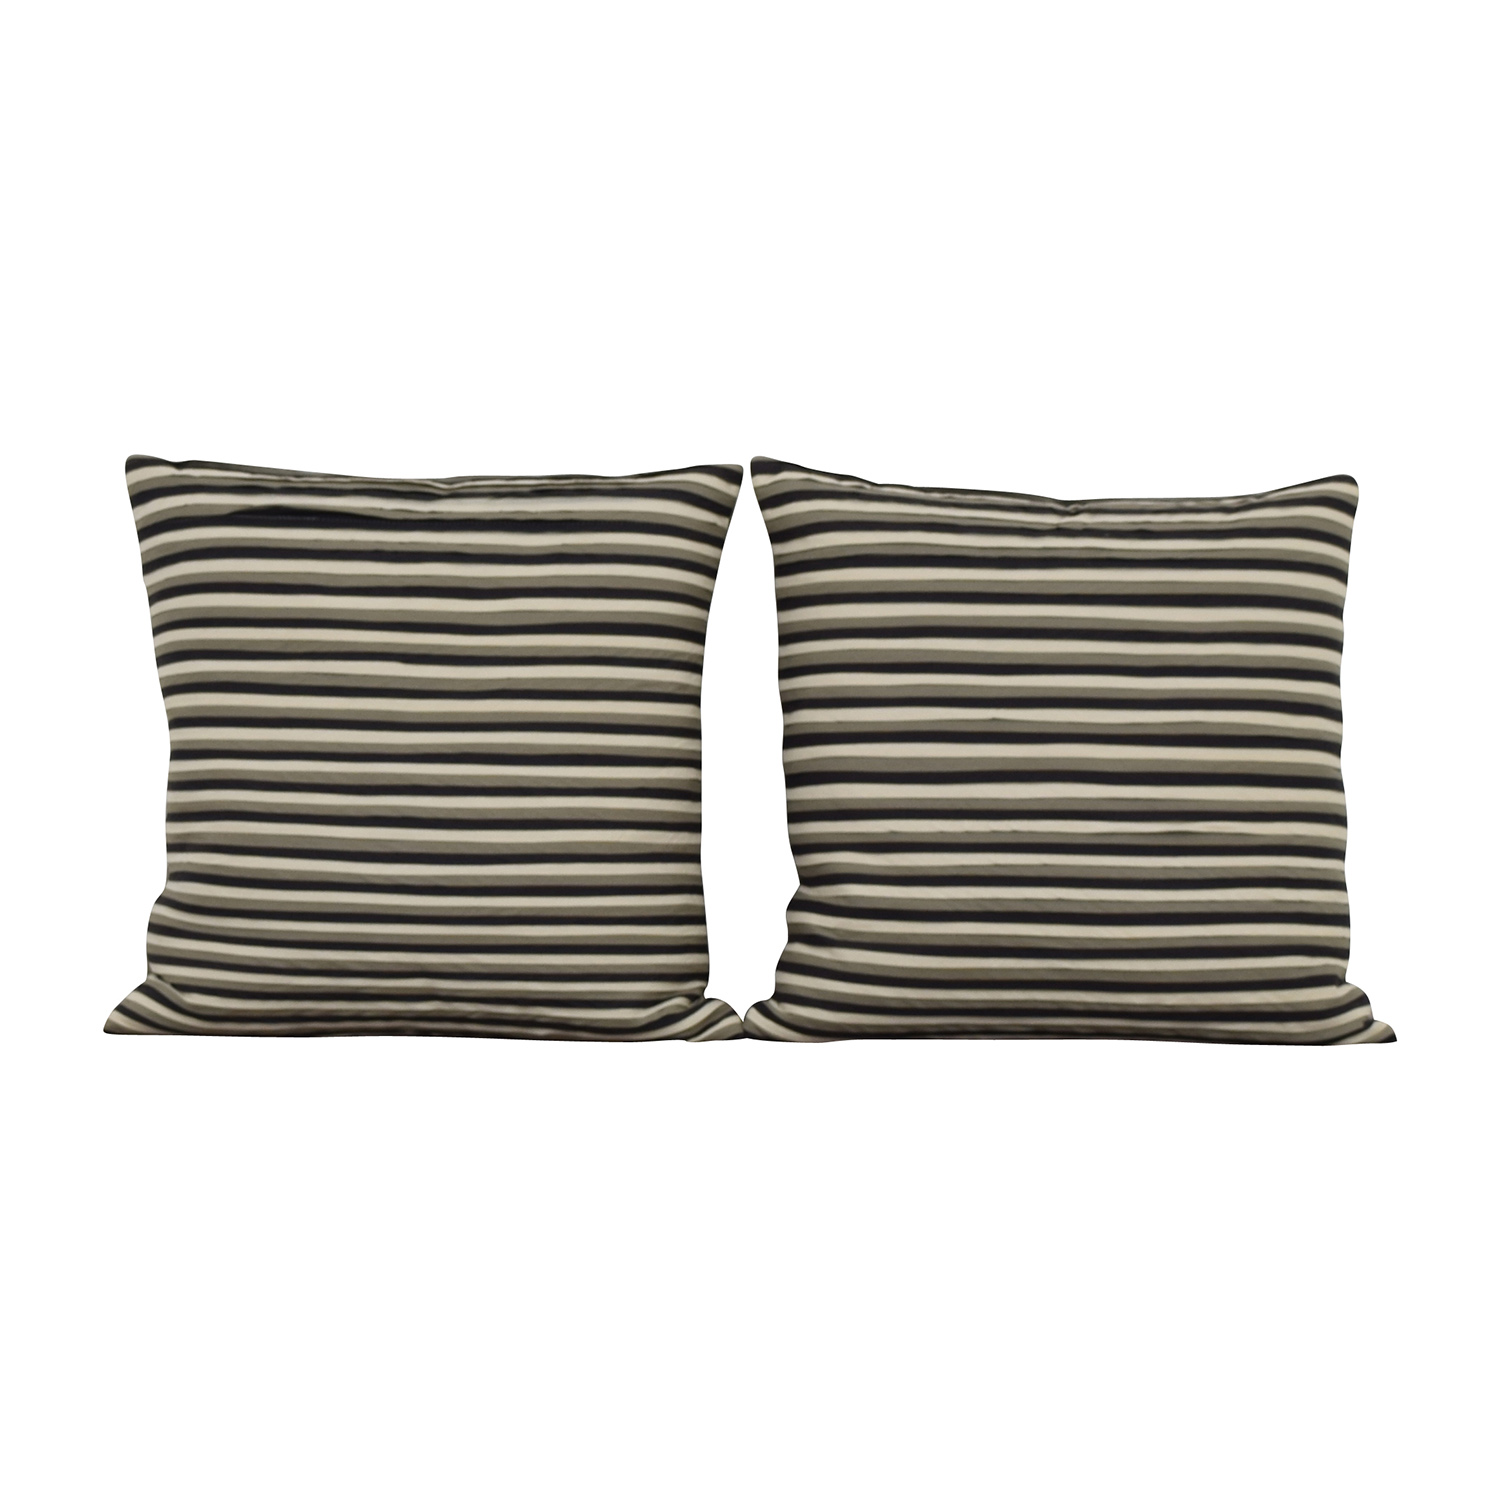 buy Striped Black Cream and Grey Toss Pillows Decorative Accents